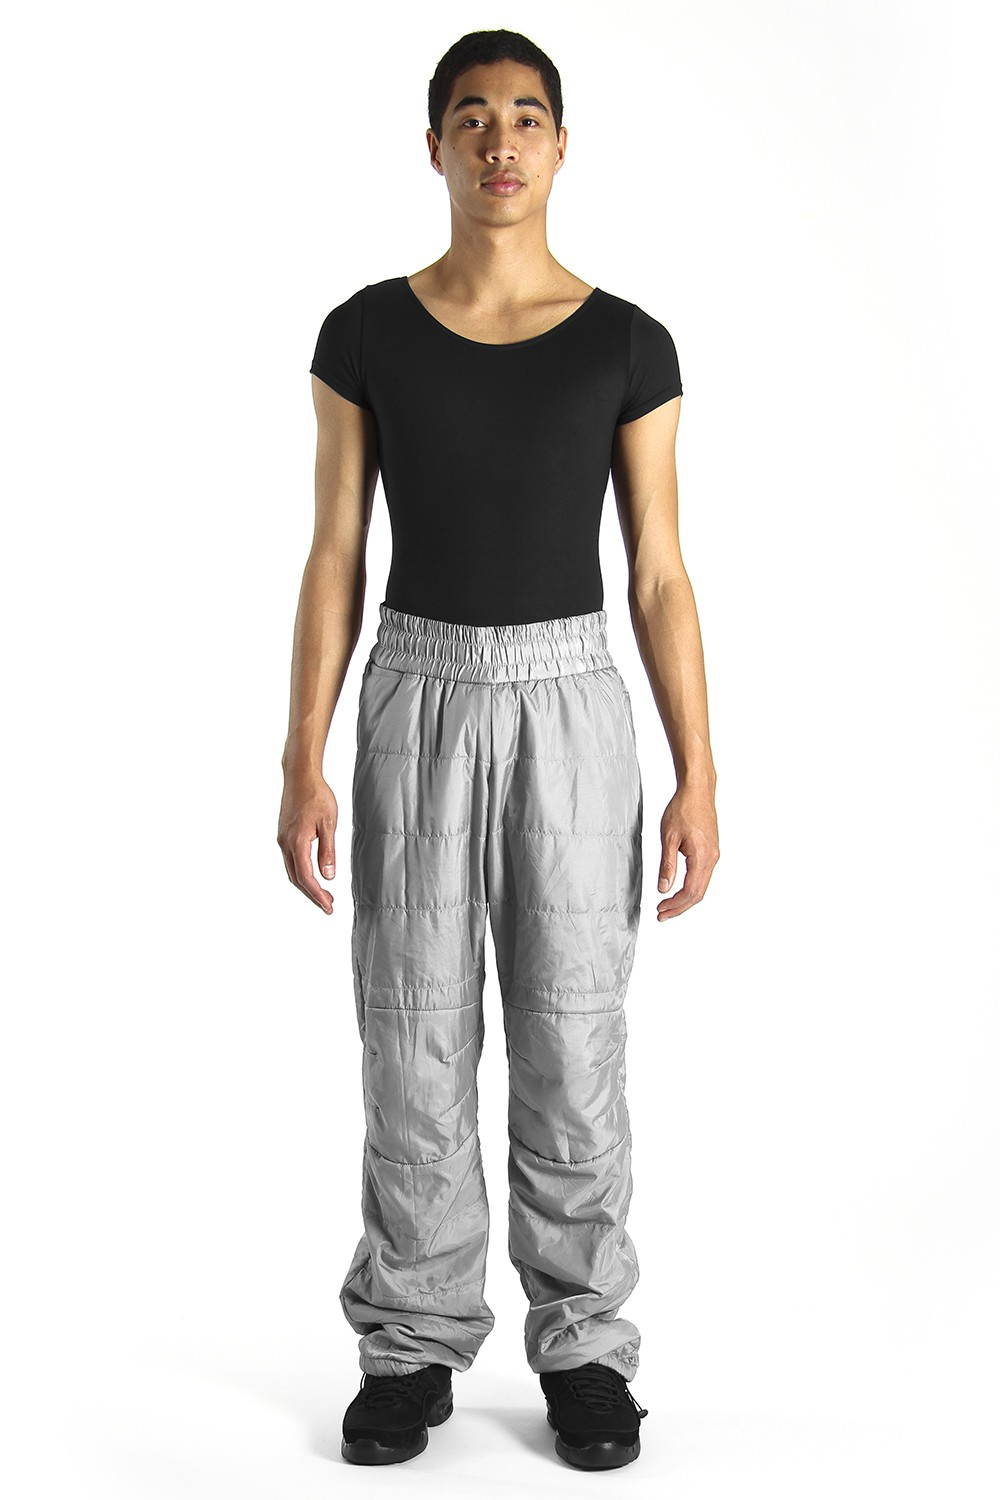 Men's Warm Up Pant Men's Dancewear